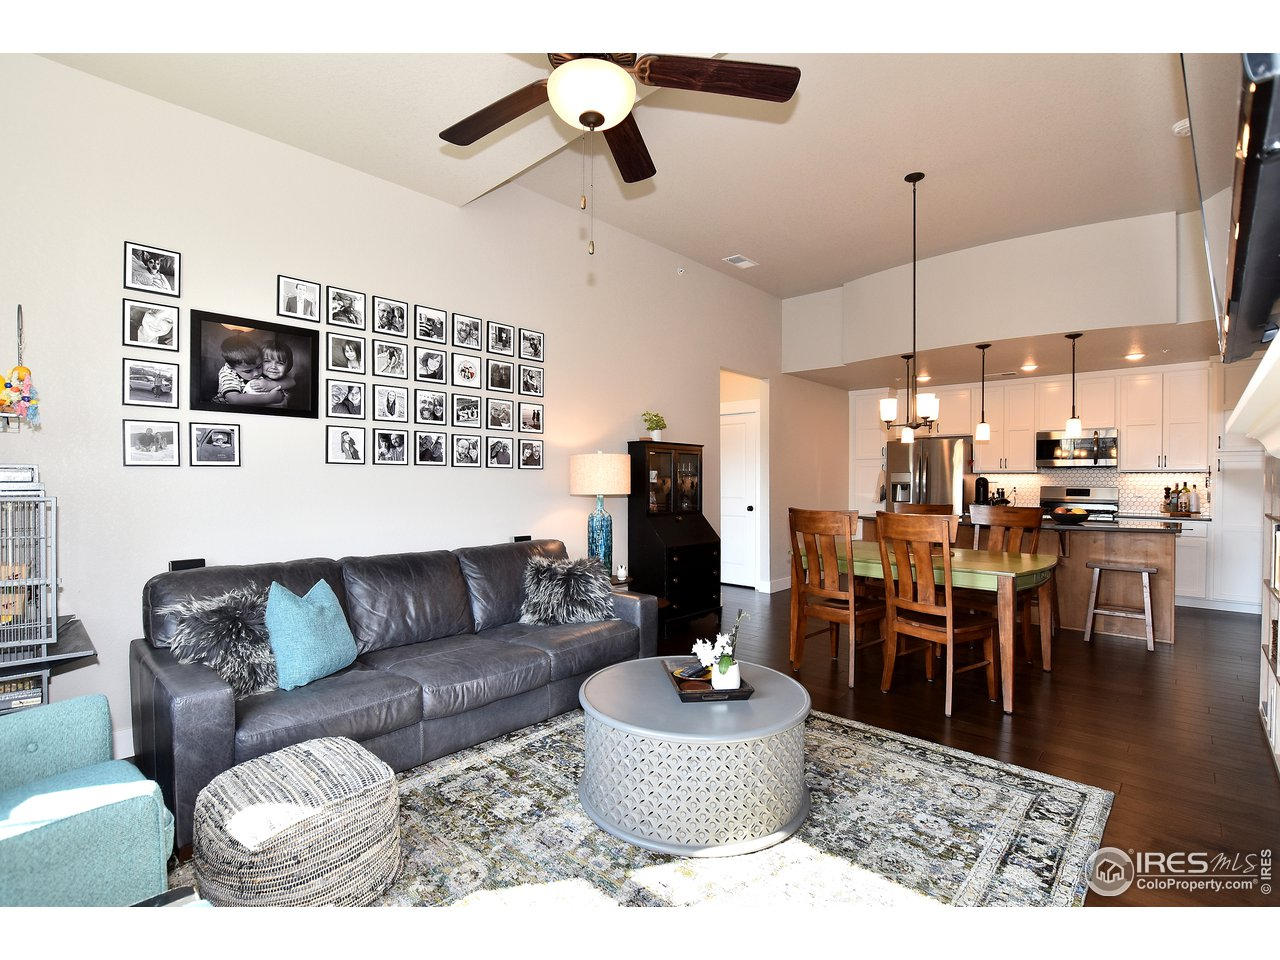 Spacious great room w/ views back to kitchen and dining space ALL upgraded engineered hardwood on main level!